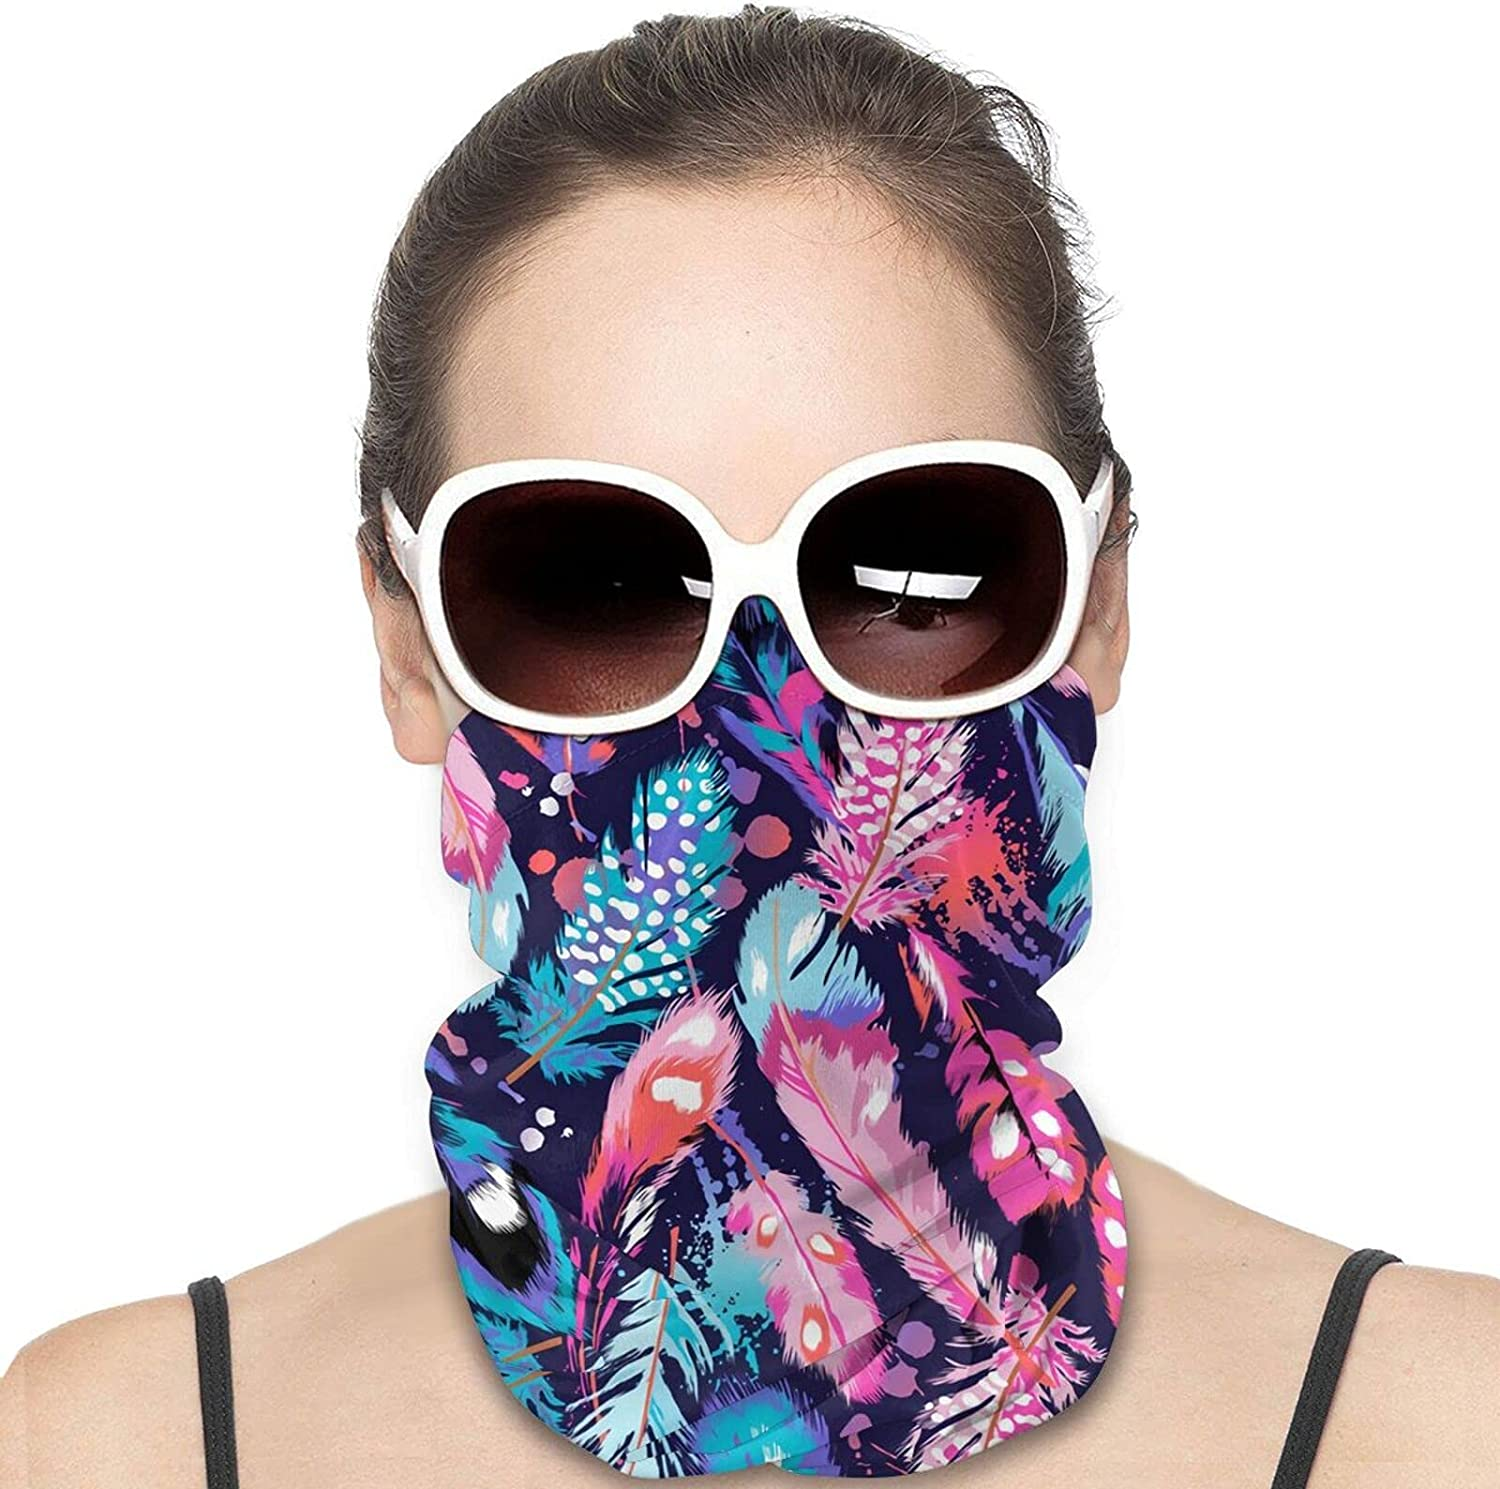 Beautiful Feathers Colorful Unisex Face Mask Sunproof Summer Cloth Masks Variety Head Scarf Unisex Bandanas And Balaclava Dustproof Headband Neck Gaiter For Cycling Camping Running For Men Women